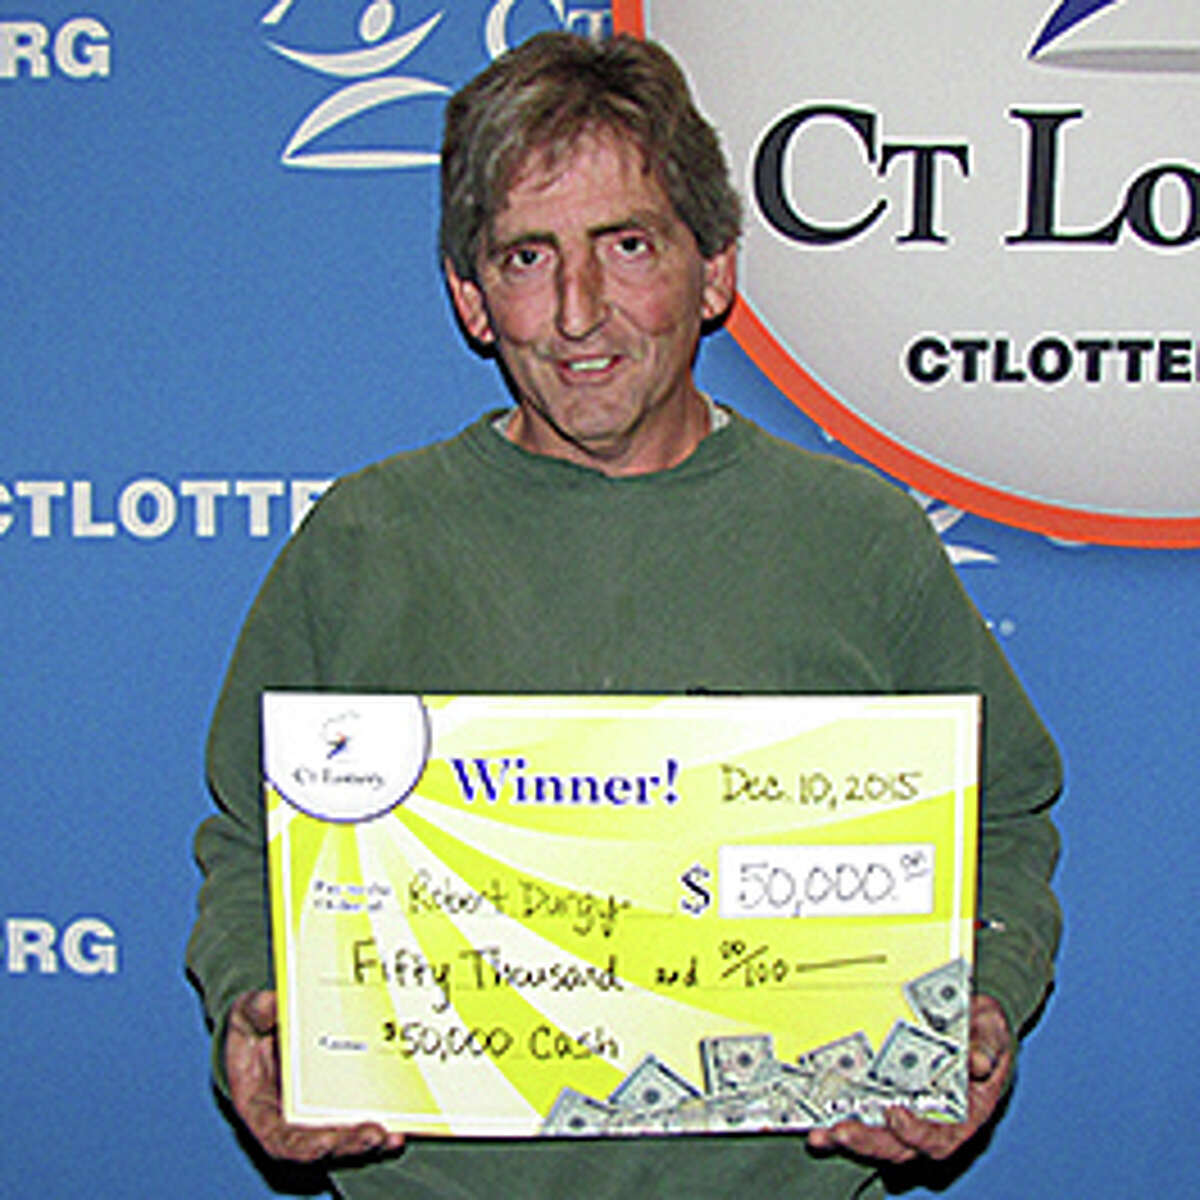 Robert Durgy of Danbury, made a spur of the moment decision at the counter to buy a CT Lottery instant game ticket. He won the top prize on a $50,000 Cash instant ticket.